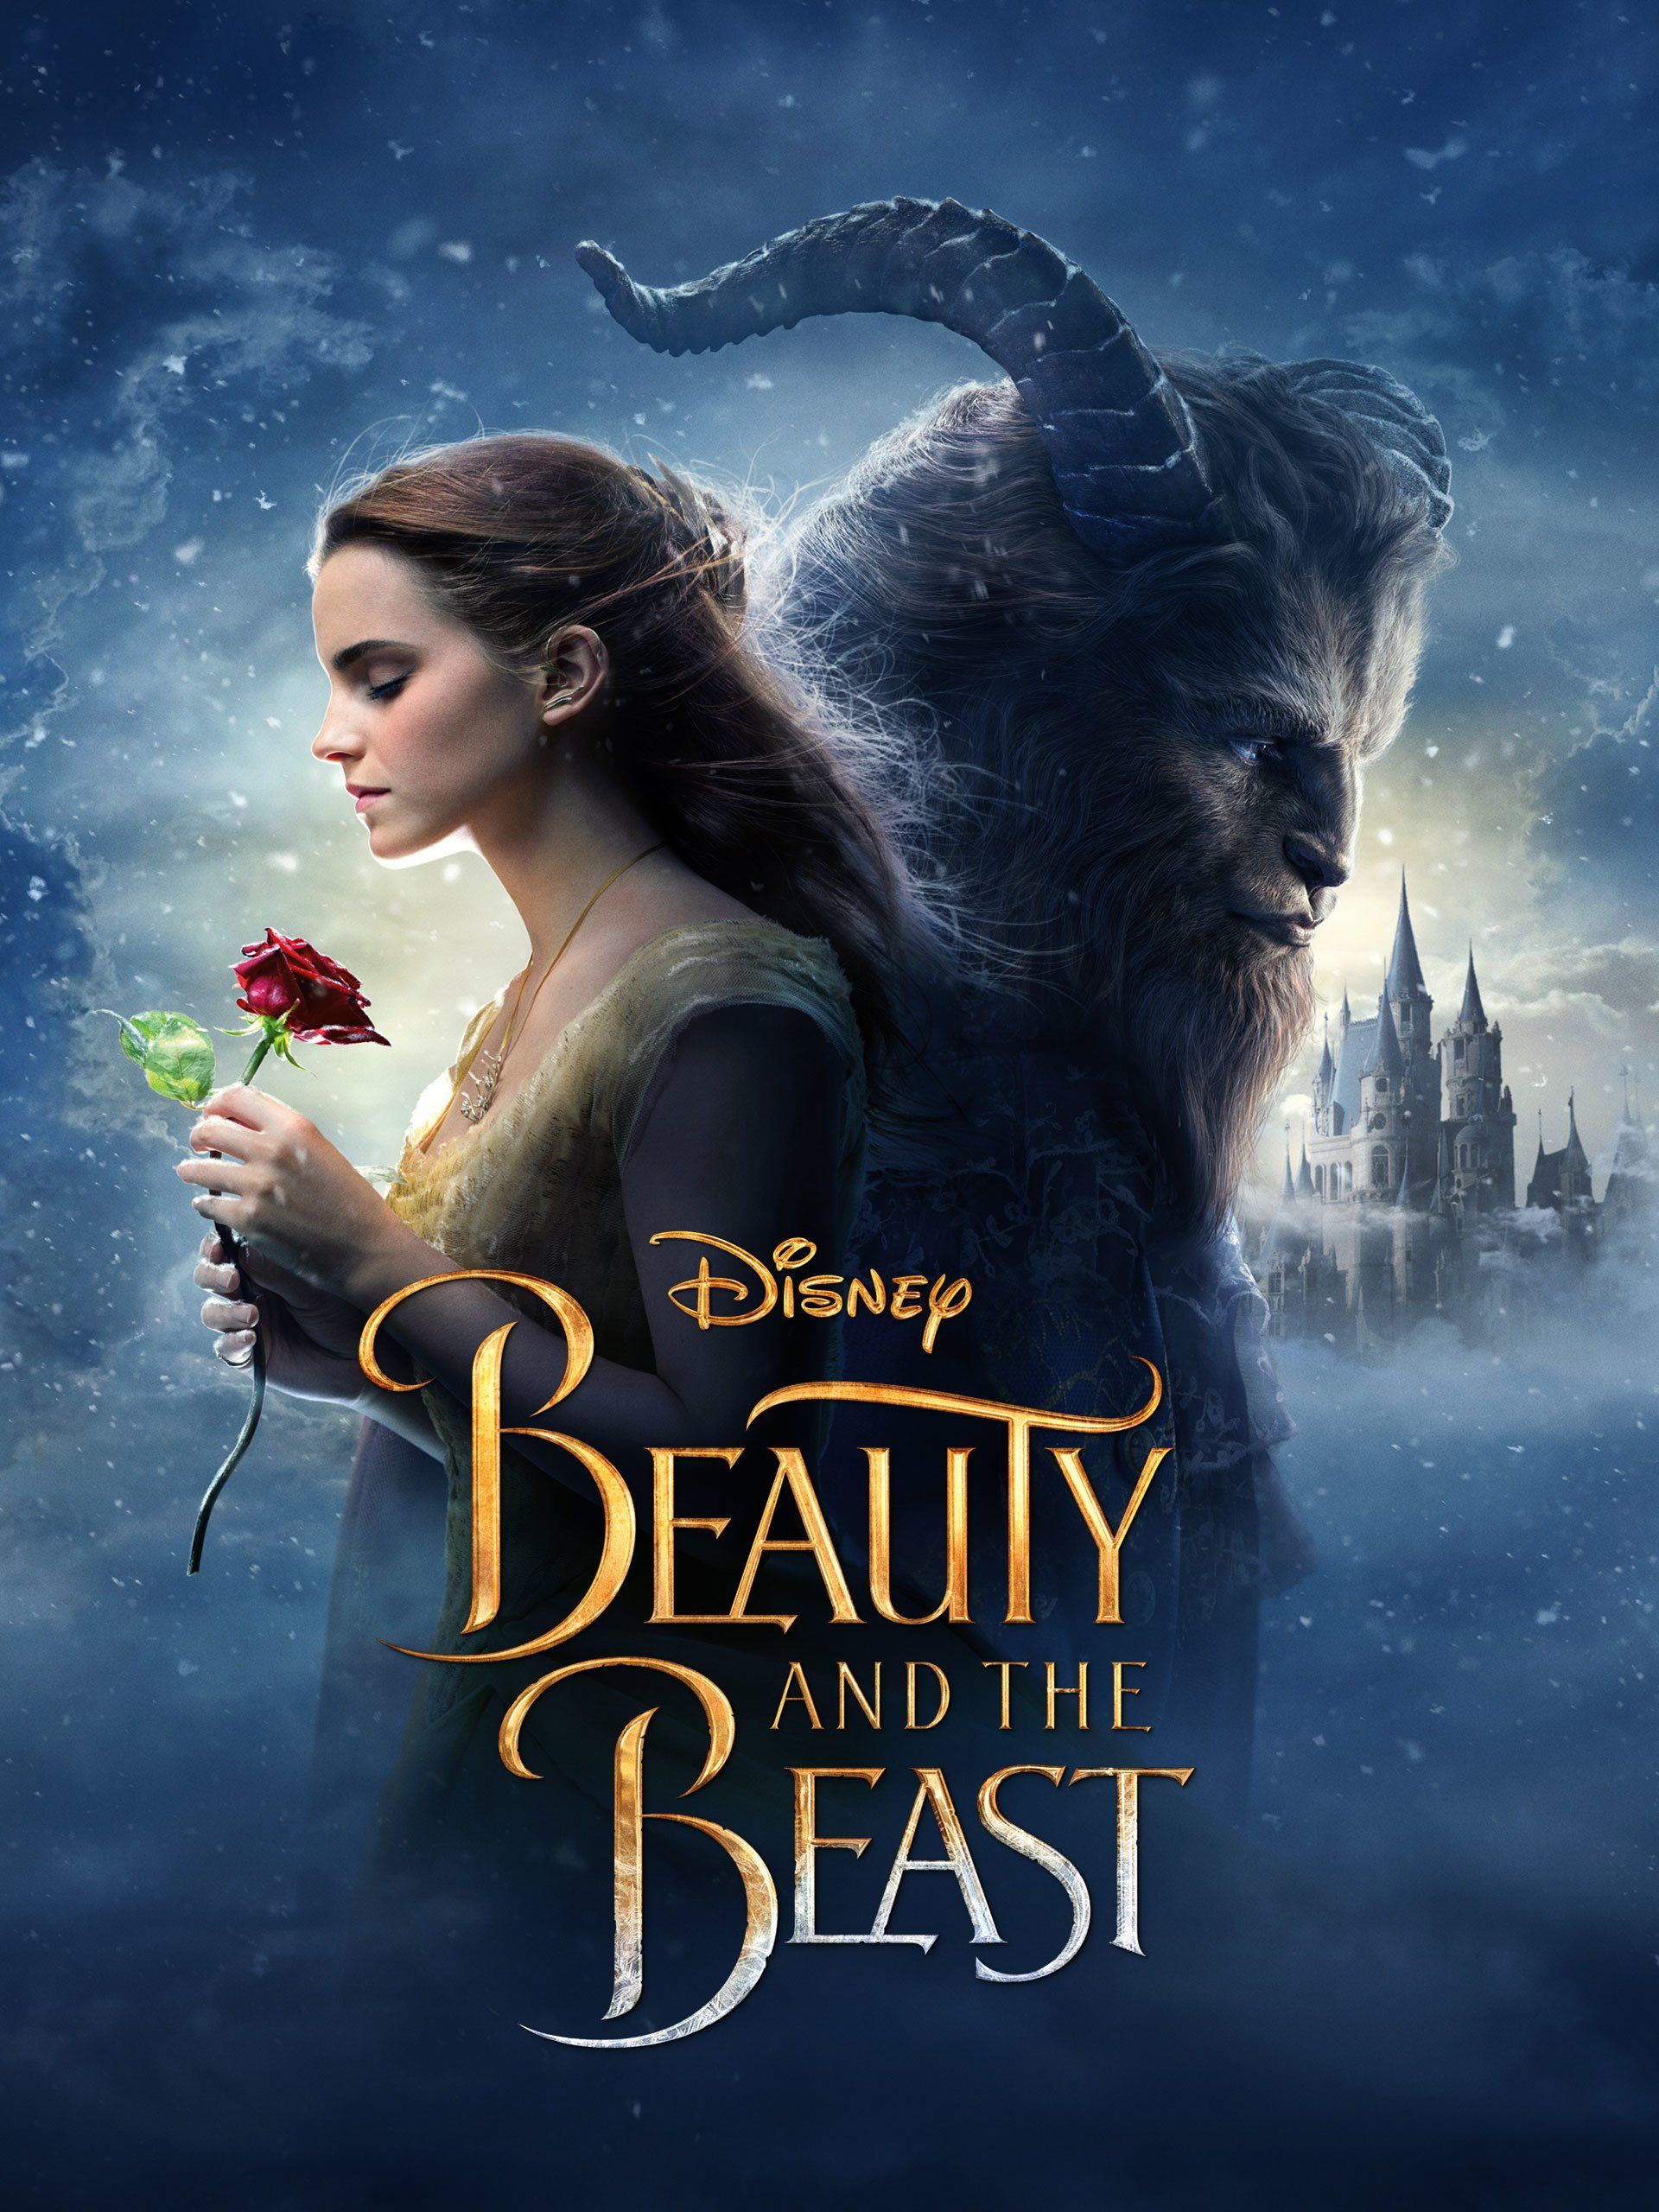 Beauty and the Beast (2017) (Plu The beast movie, Beauty